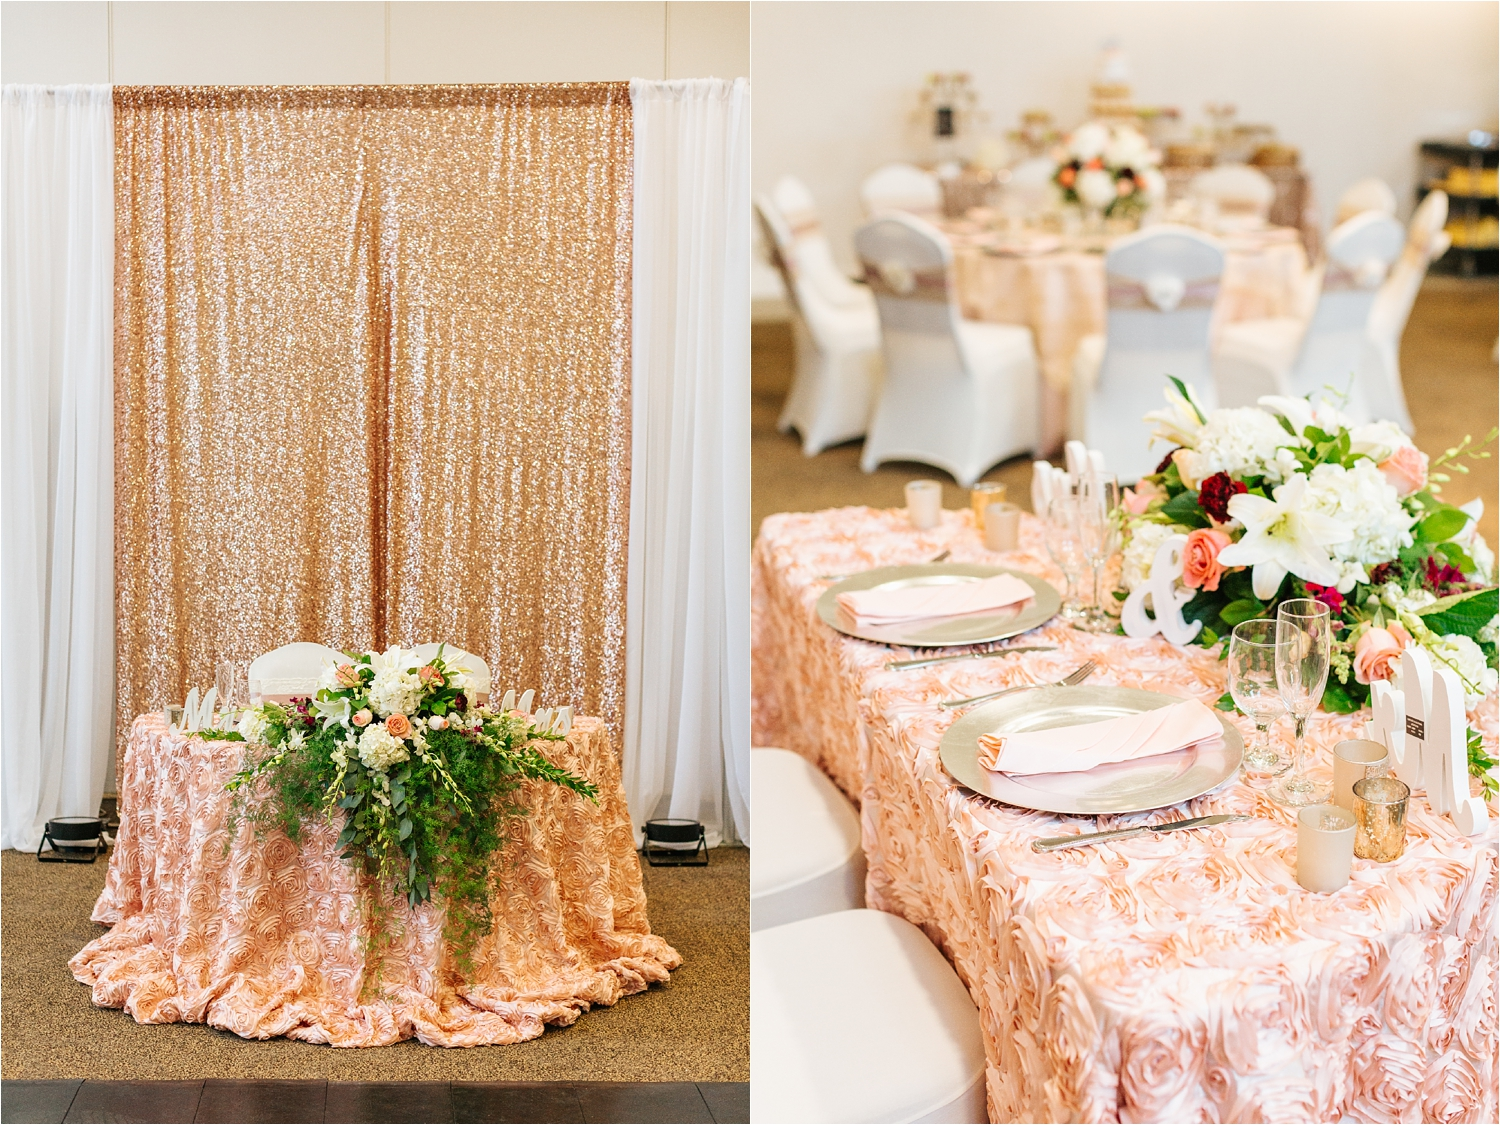 Bride and Groom Sweetheart Table - California Wedding - https://brittneyhannonphotography.com